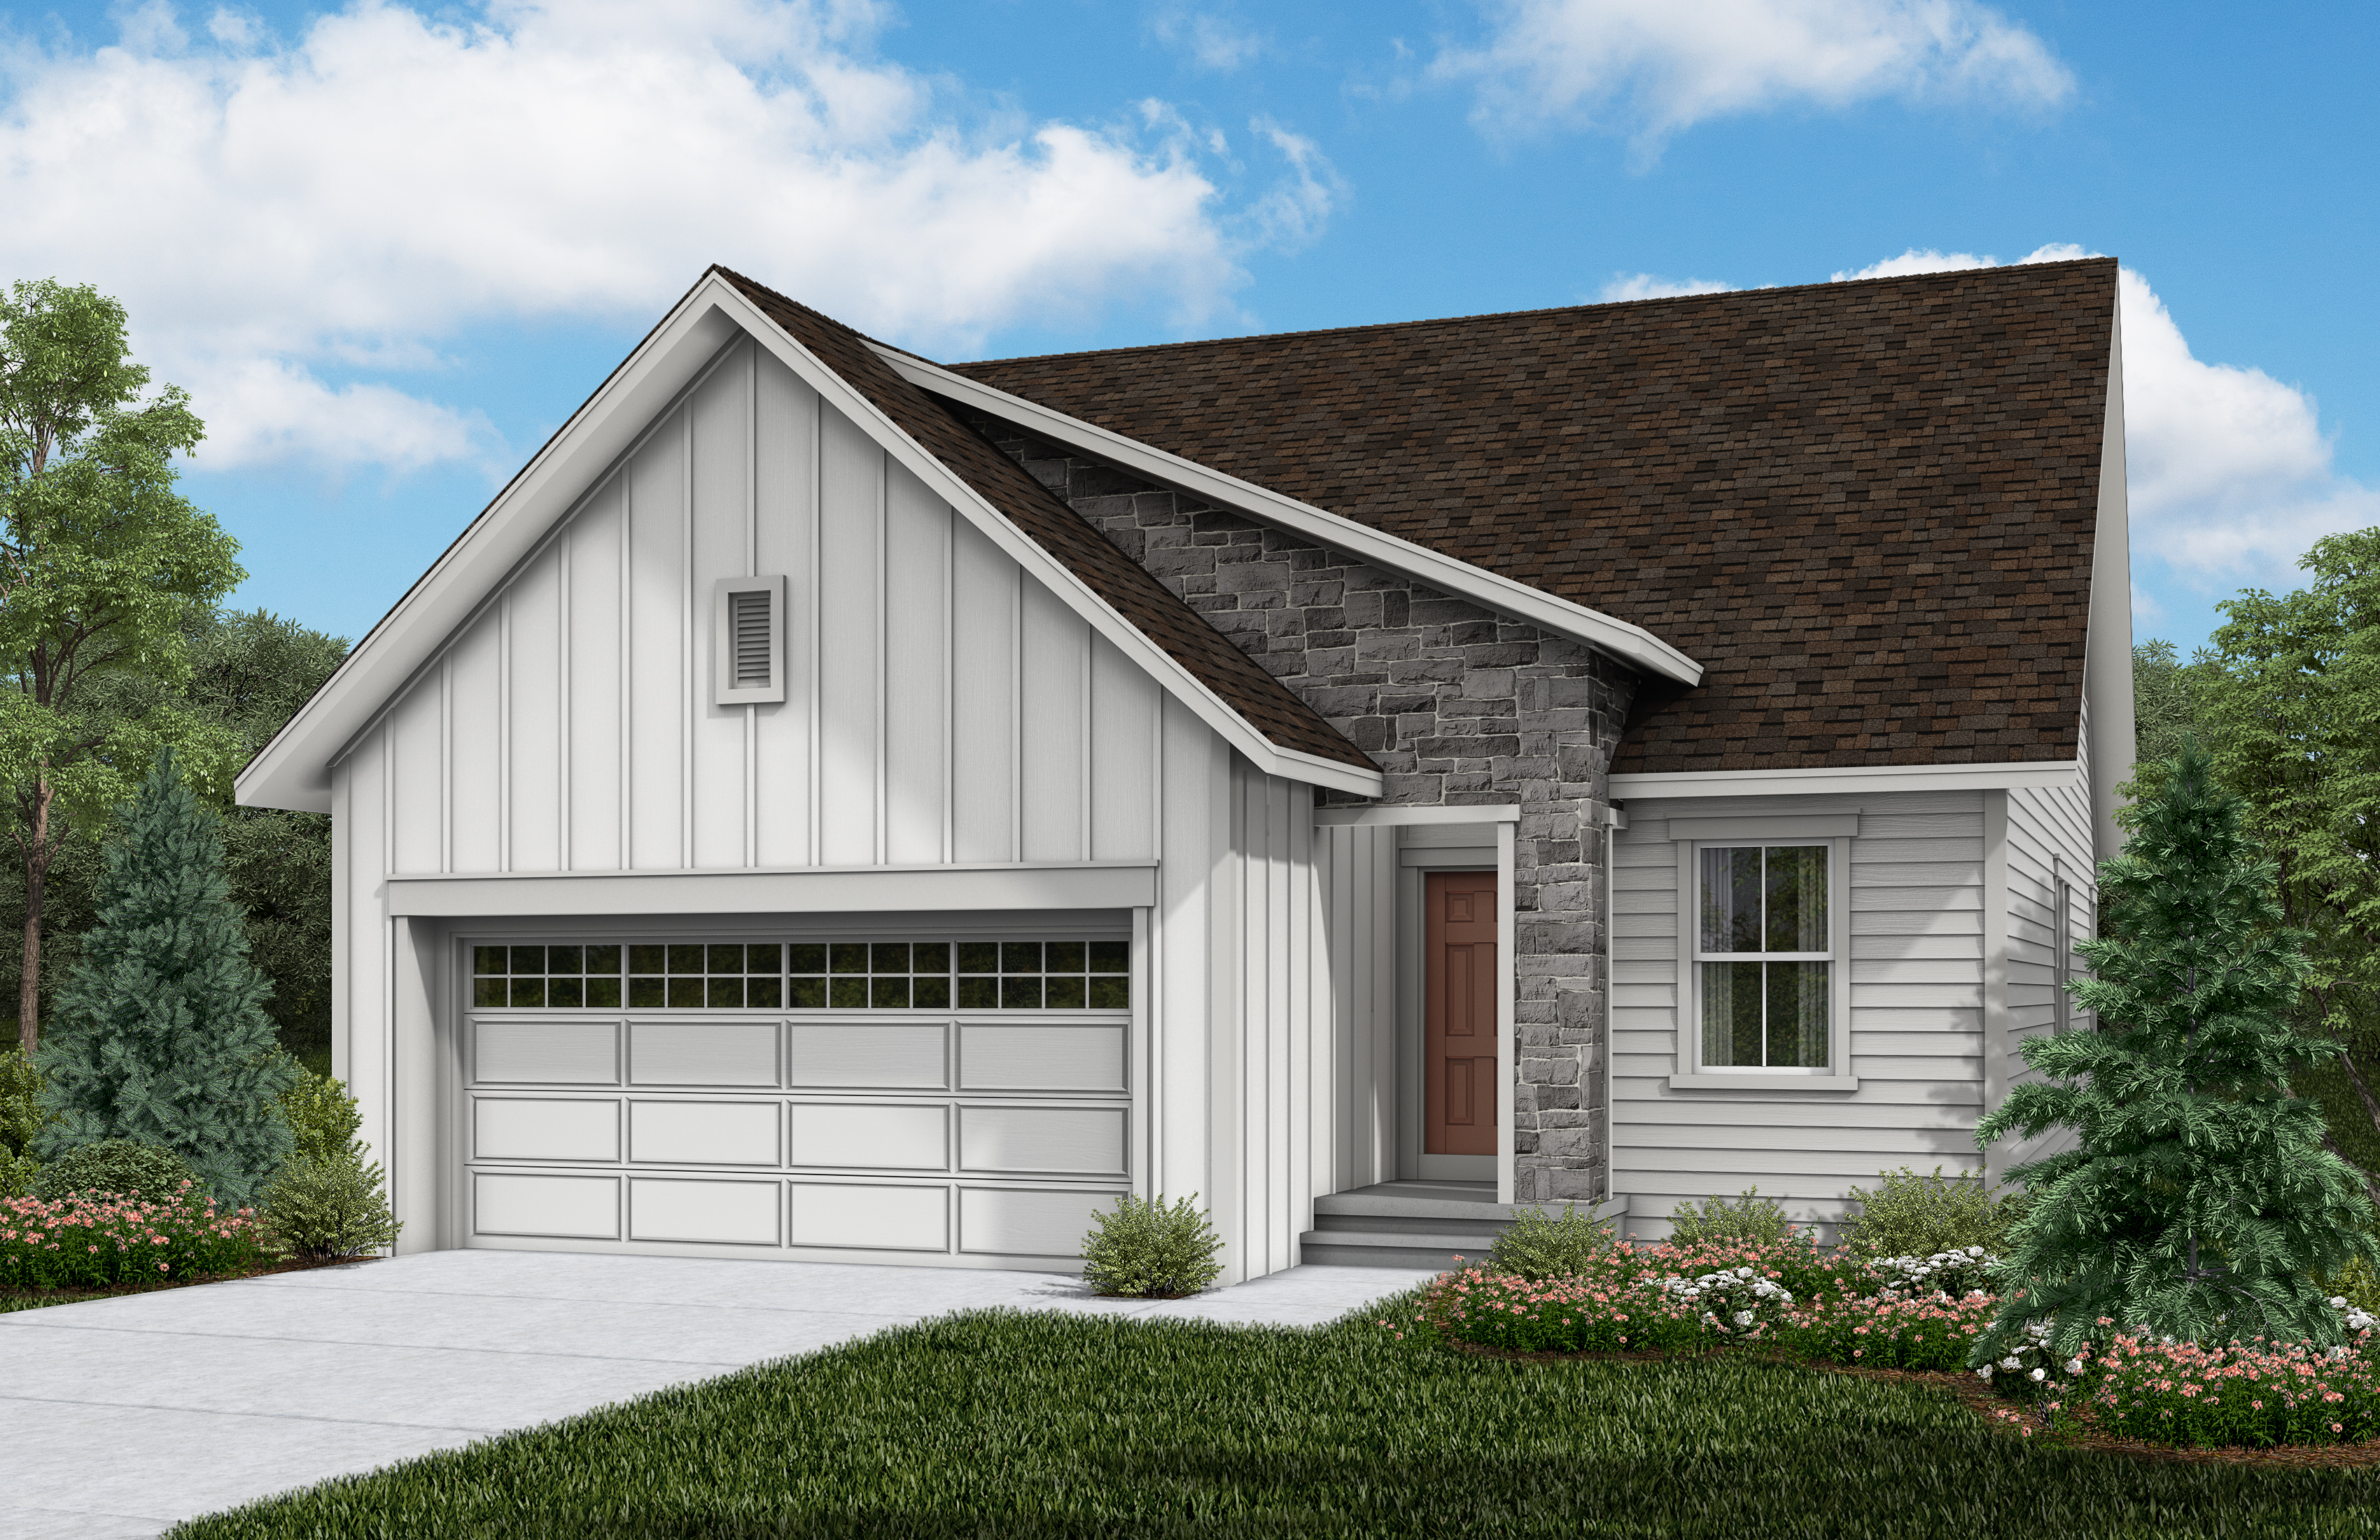 Kb Home Announces The Grand Opening Of The Villages At Prairie